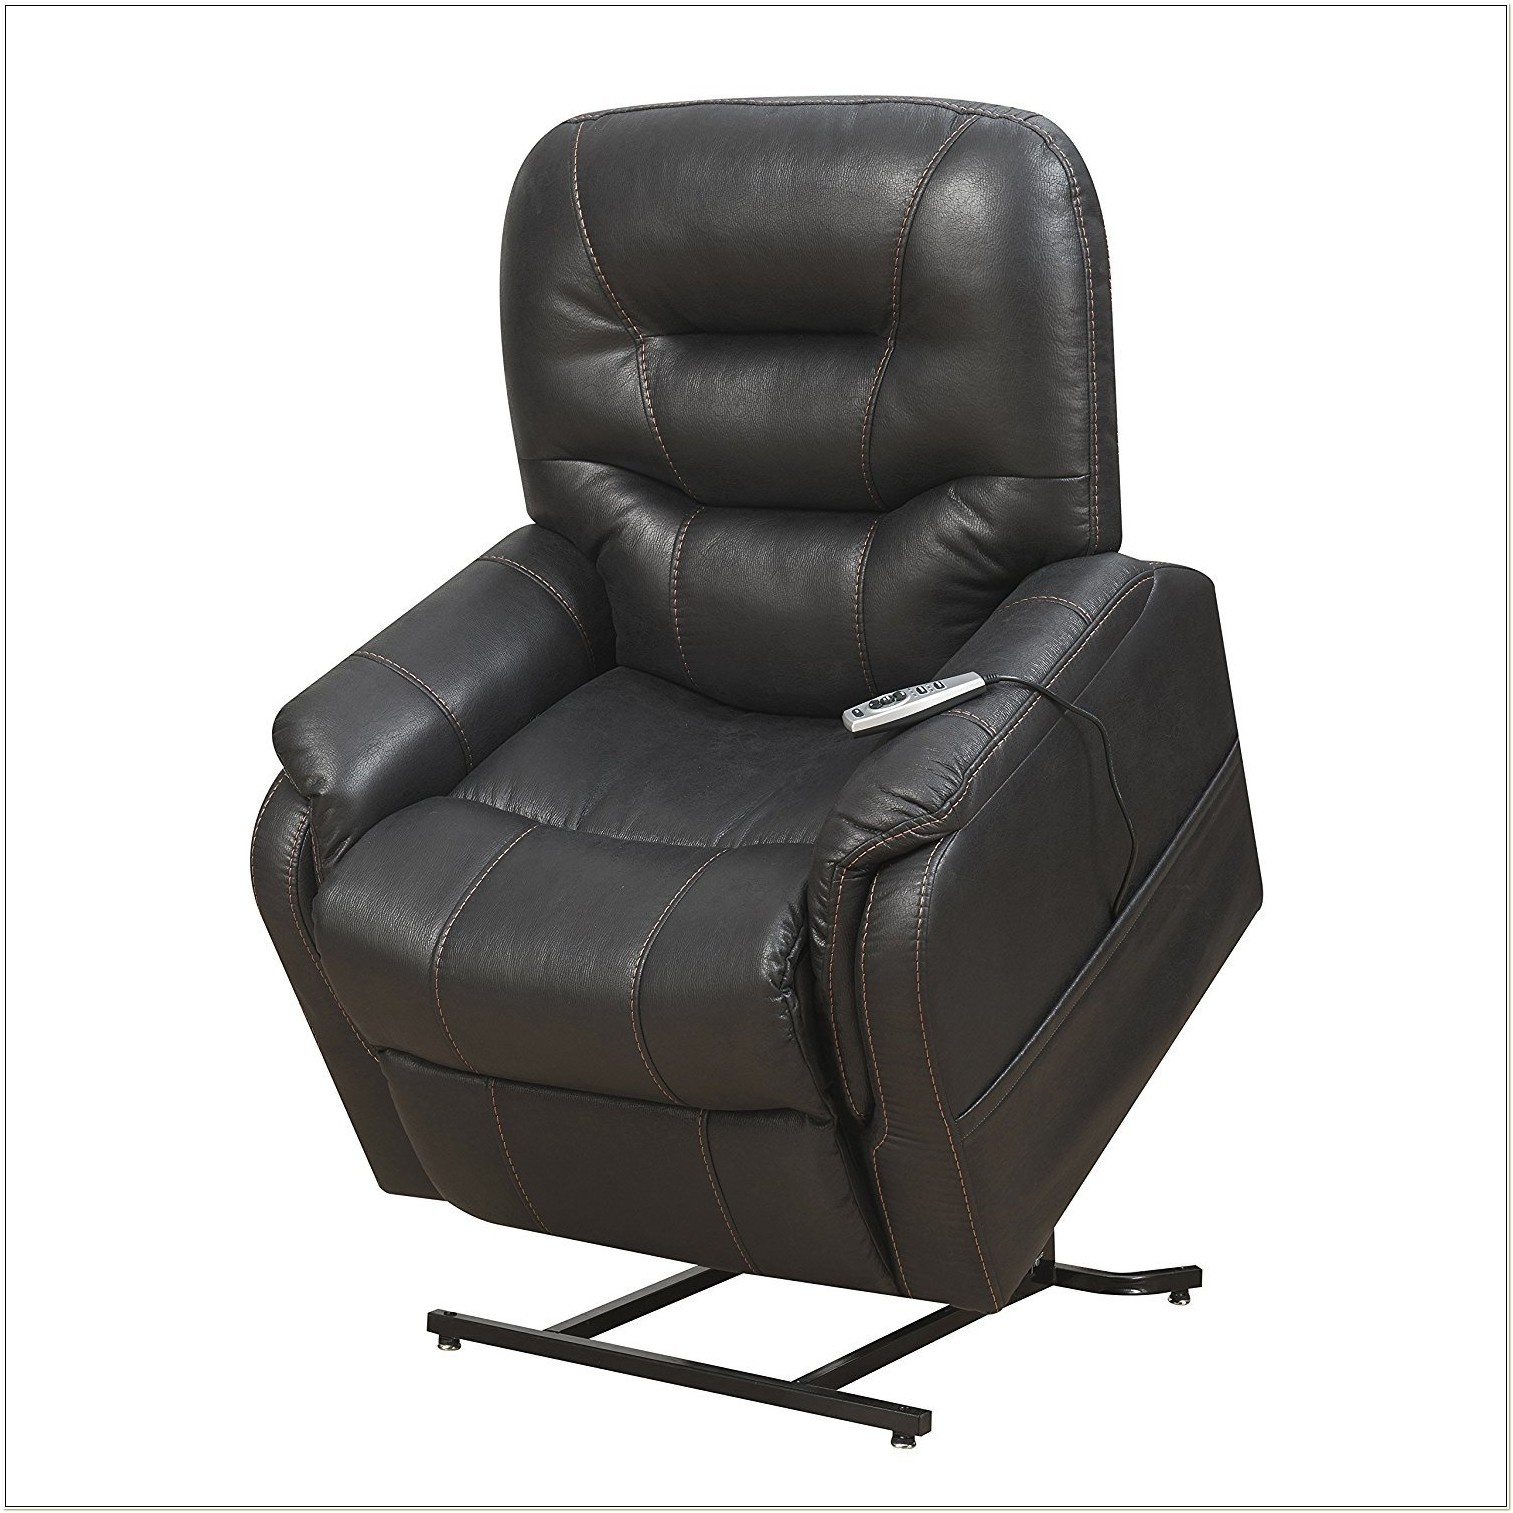 Home Meridian Comfort Lift Chair